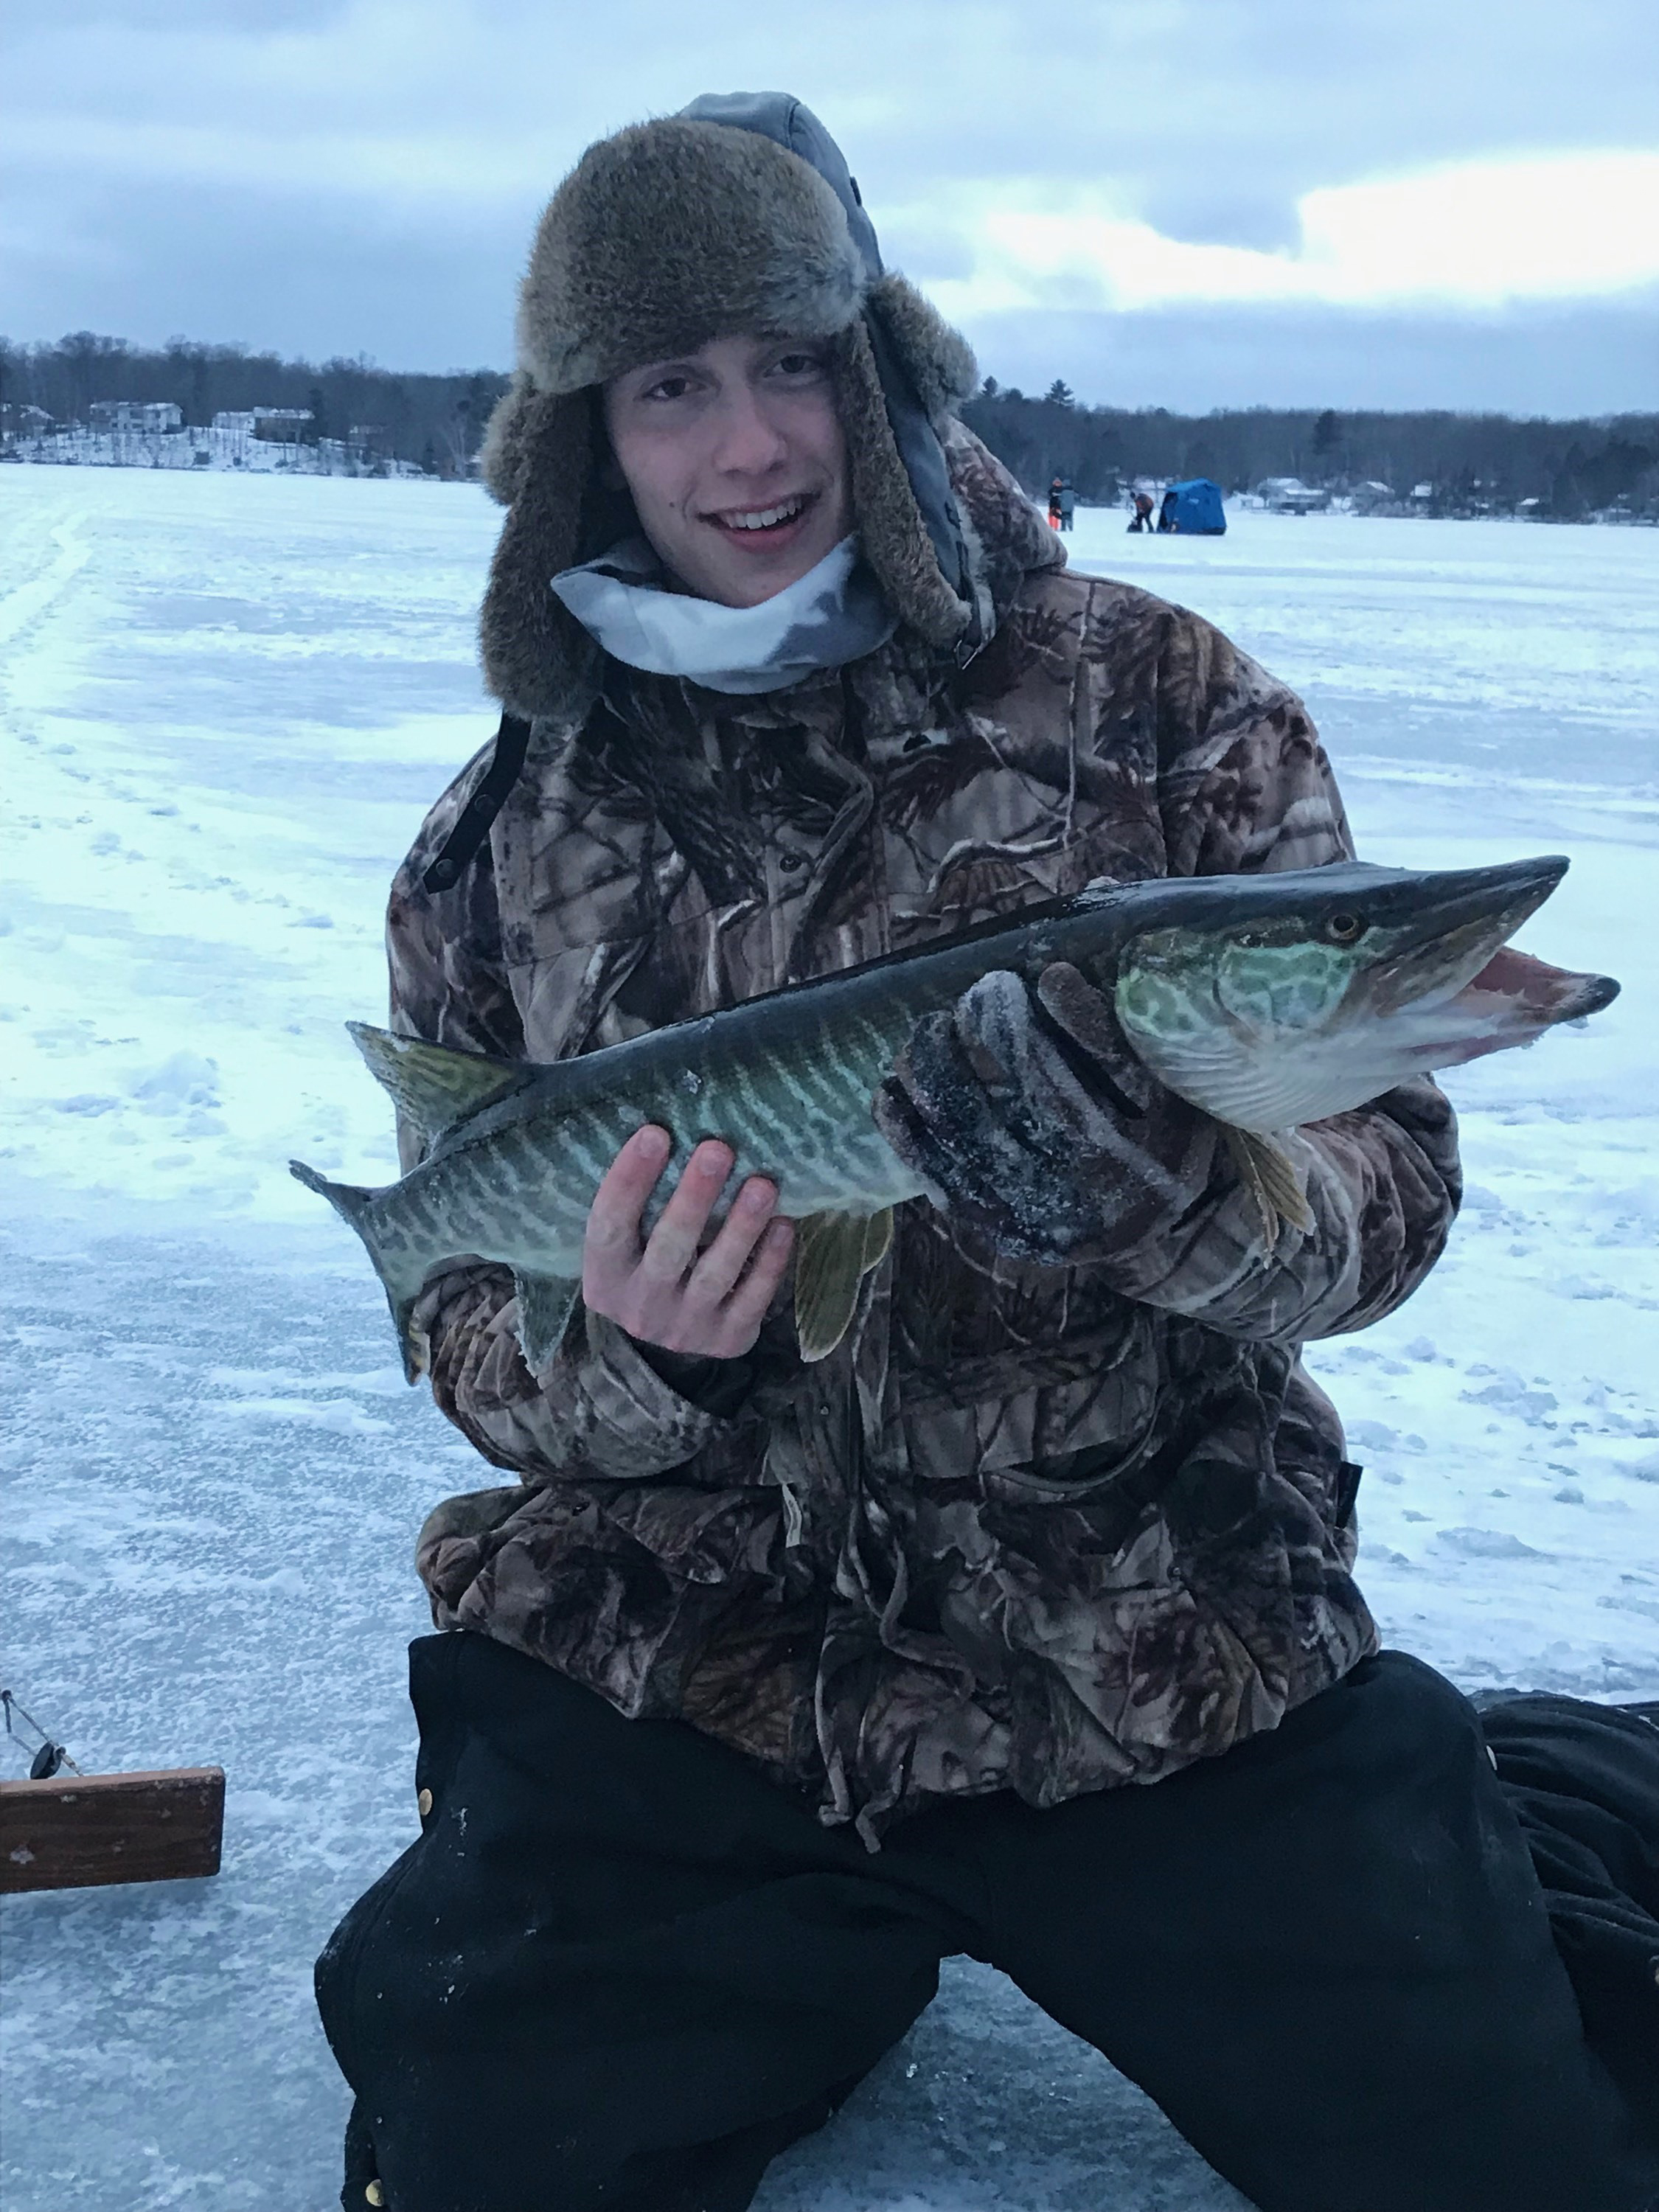 Mason shows off a nice tiger musky caught in the Lakeland area. Submitted photo